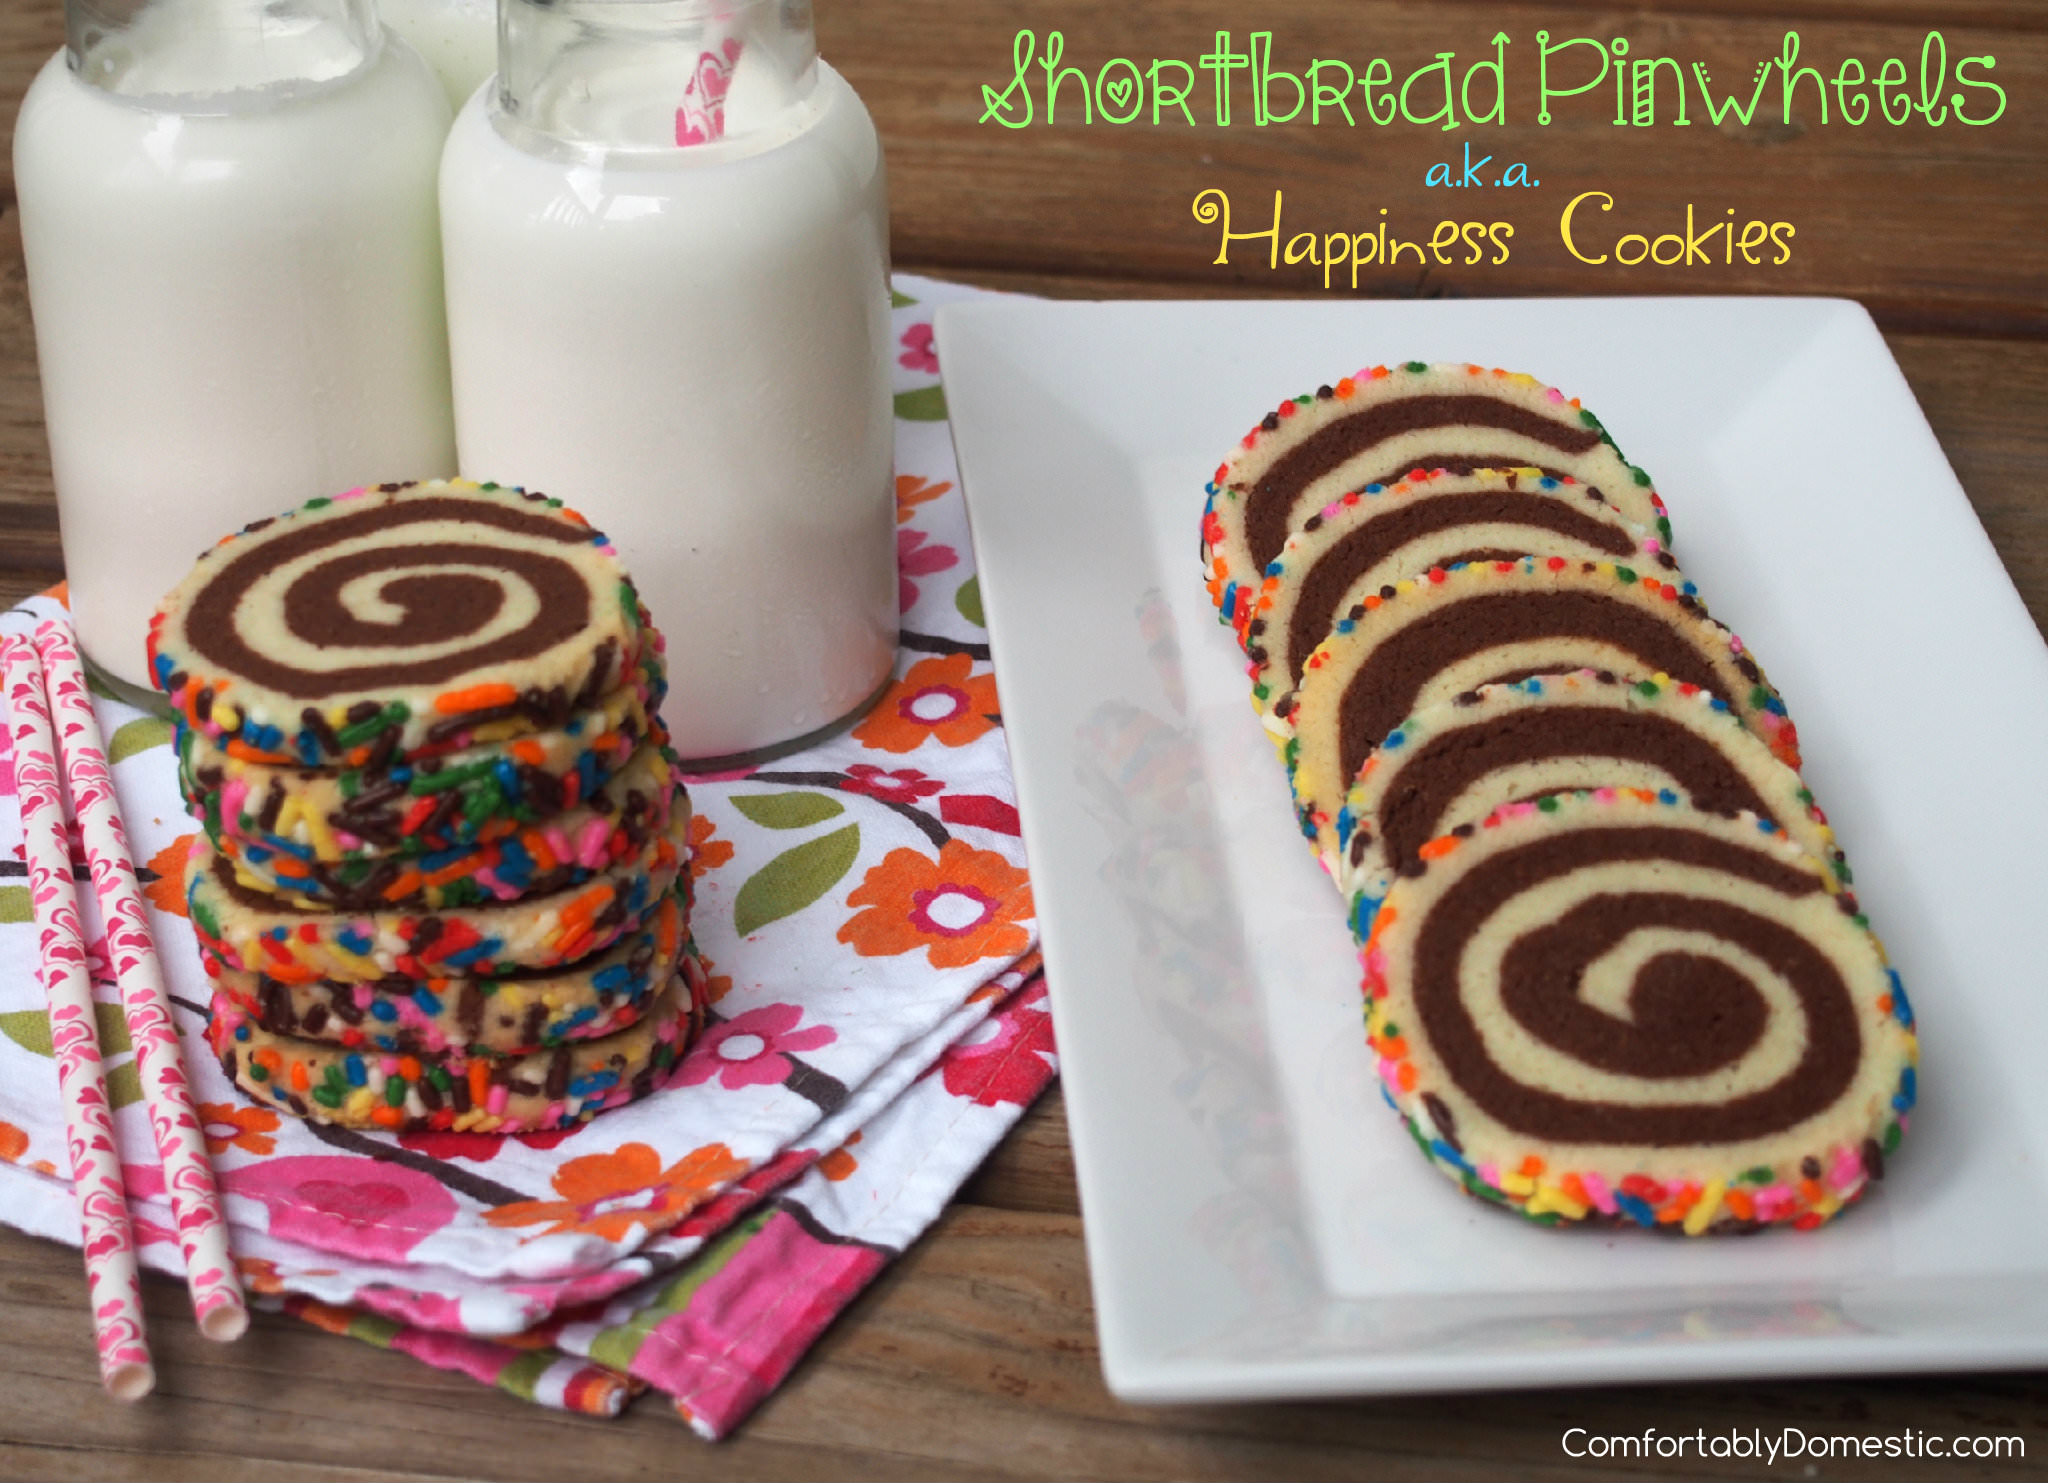 Shortbread pinwheels are buttery vanilla and chocolate shortbread cookies presented in a fun pinwheel design, with colorful sprinkles for an added touch of whimsy. | ComfortablyDomestic.com, a.k.a. Happiness Cookies